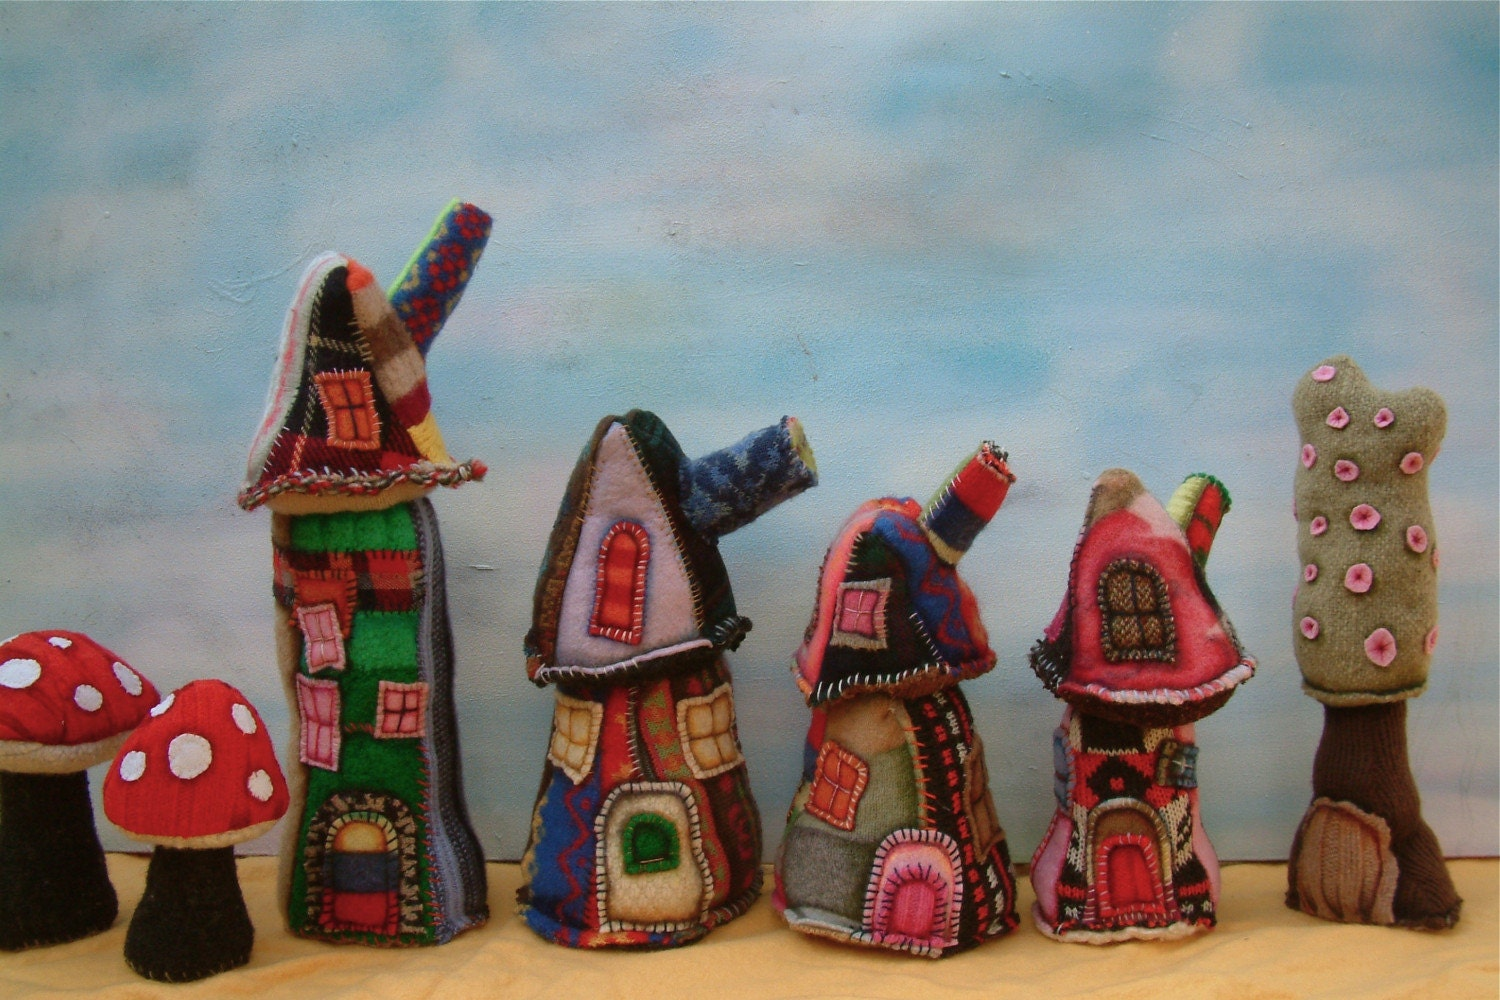 wool houses in a row -taking custom orders